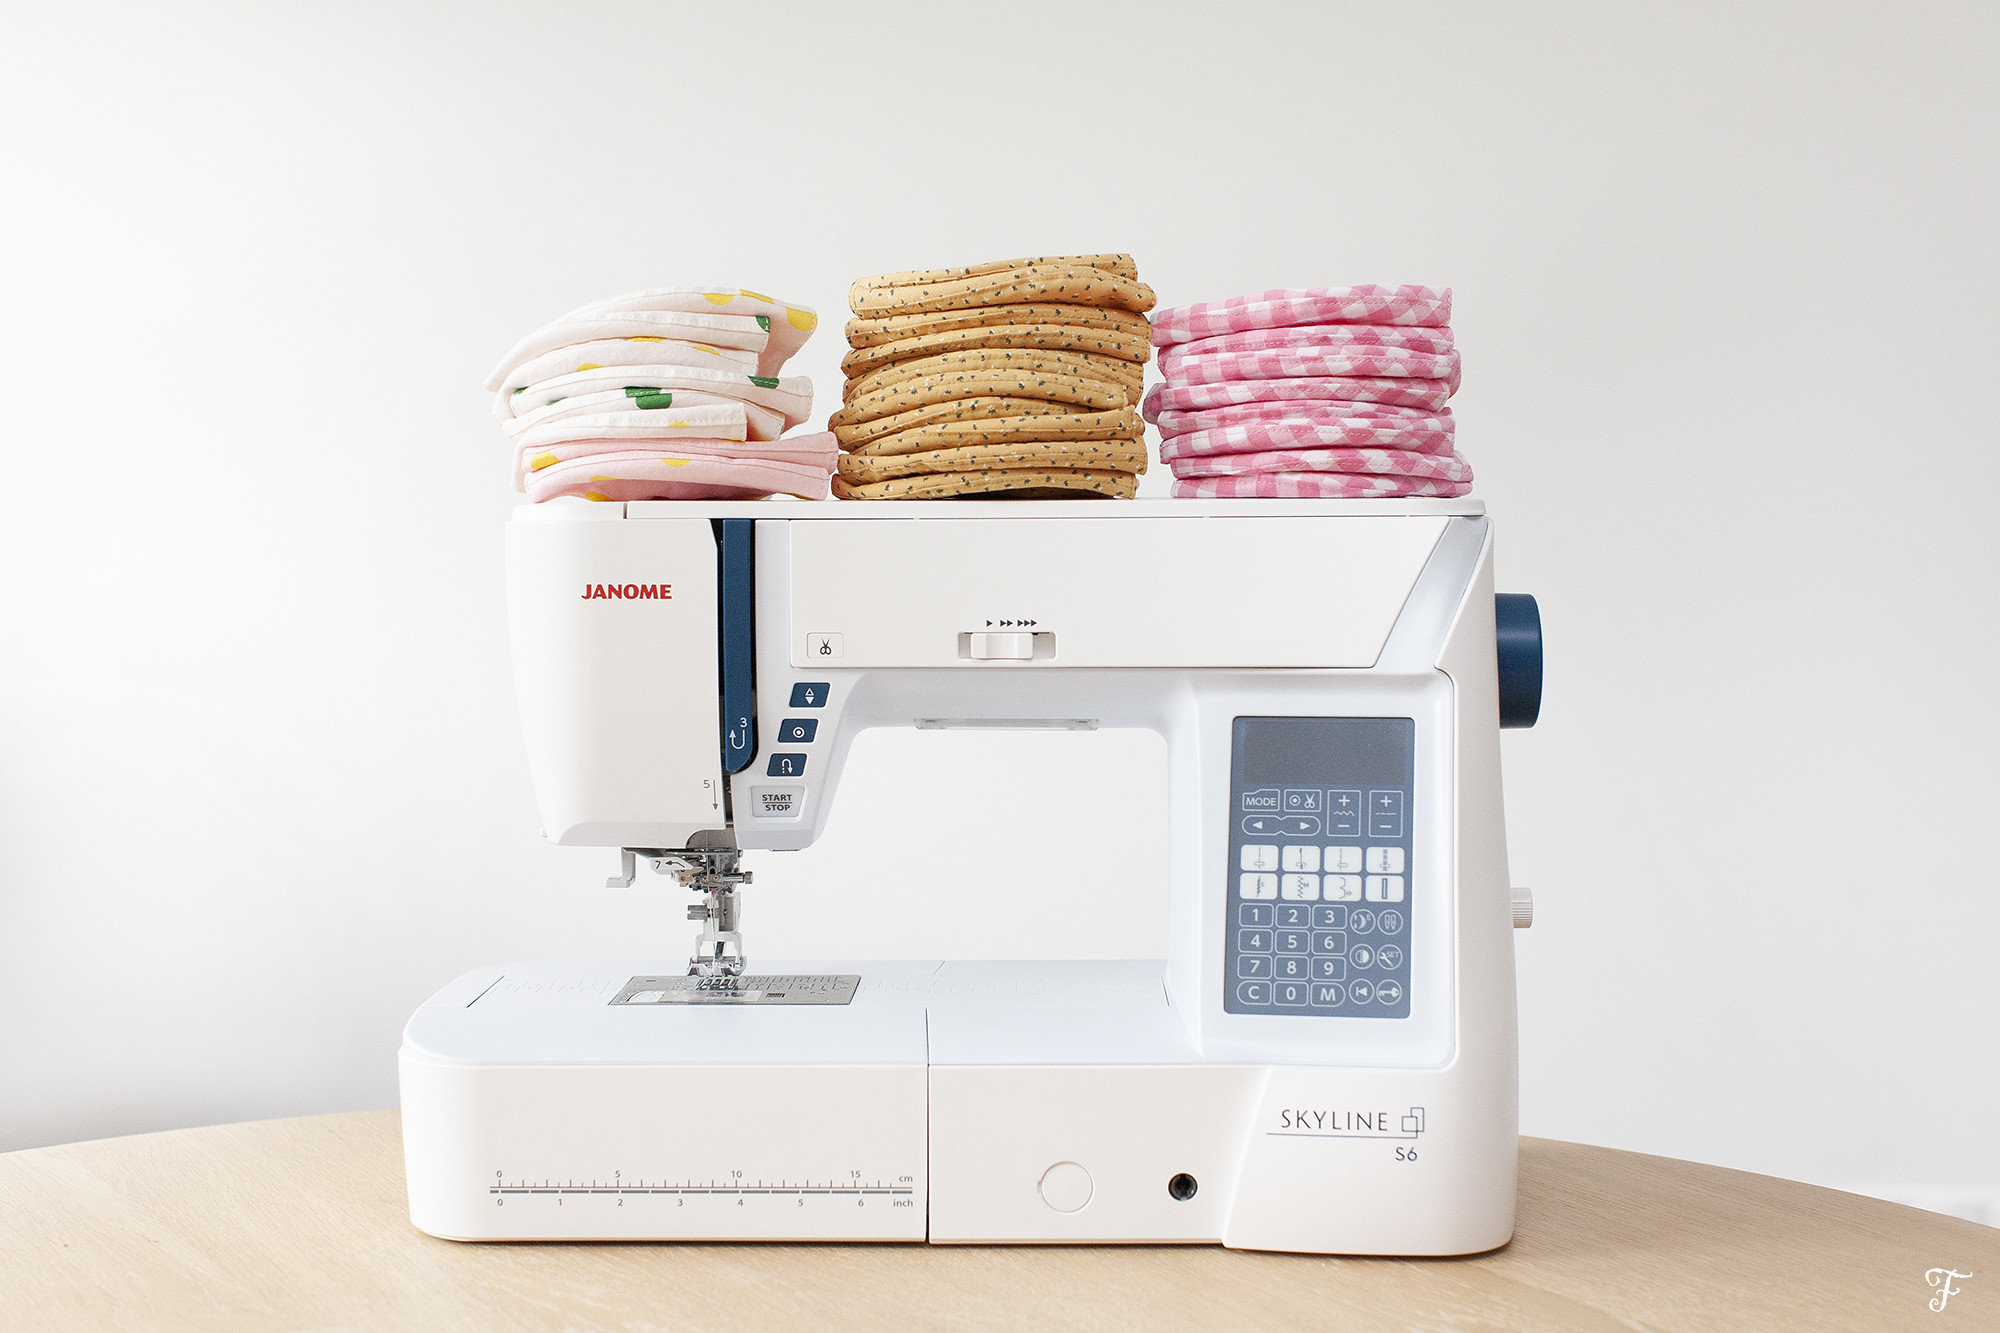 FENSISMENSI facemask skyline s6 janome sewing machine covid 19